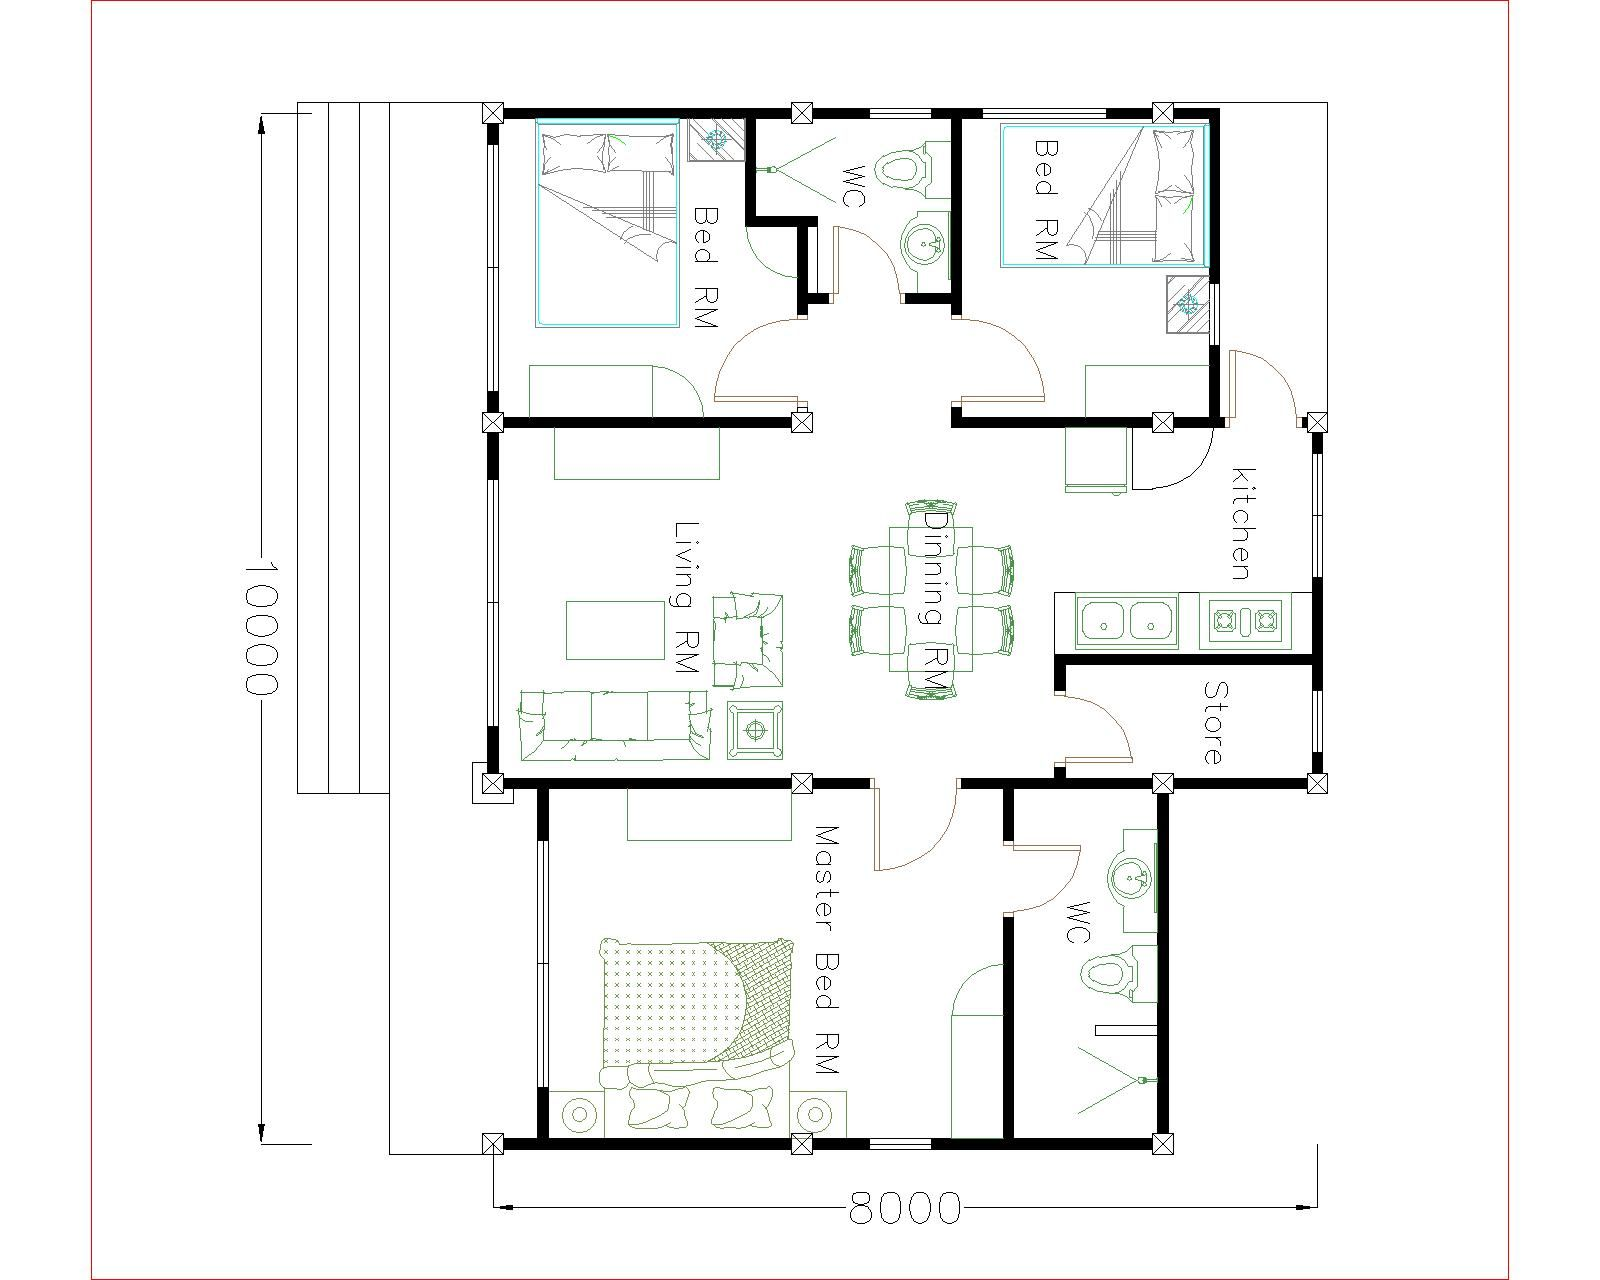 House Plans 10x8 With 3 Bedrooms Gable Roof House Plans 3d Small House Plans House Plans House Roof